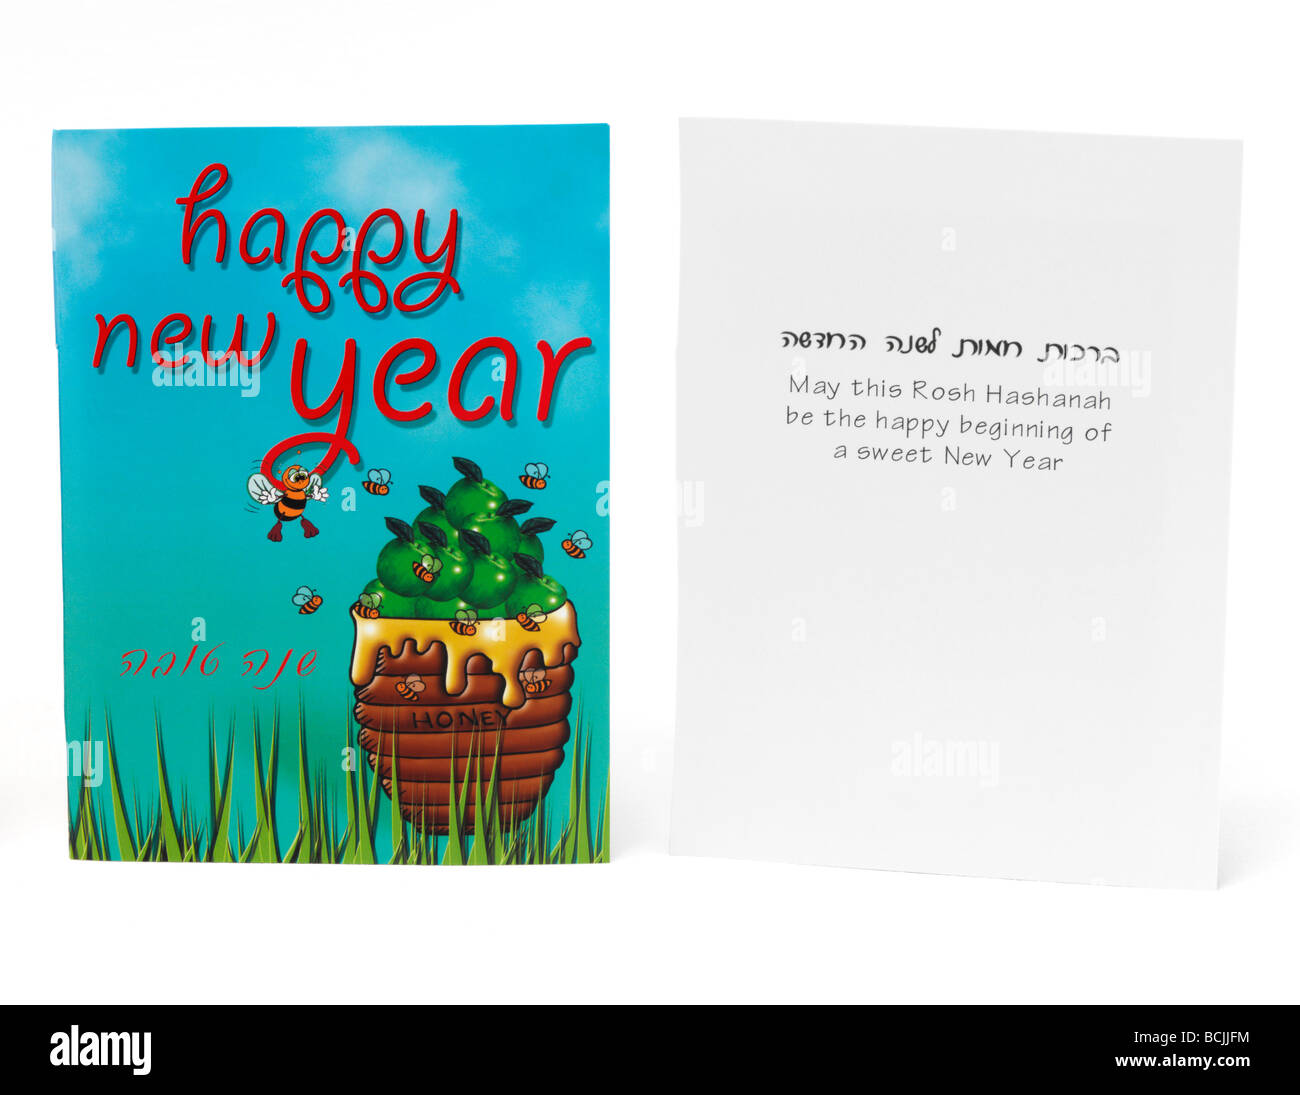 Rosh hashanah card stock photos rosh hashanah card stock images rosh hashanah cards jewish new year honey and apples traditionally eaten stock image m4hsunfo